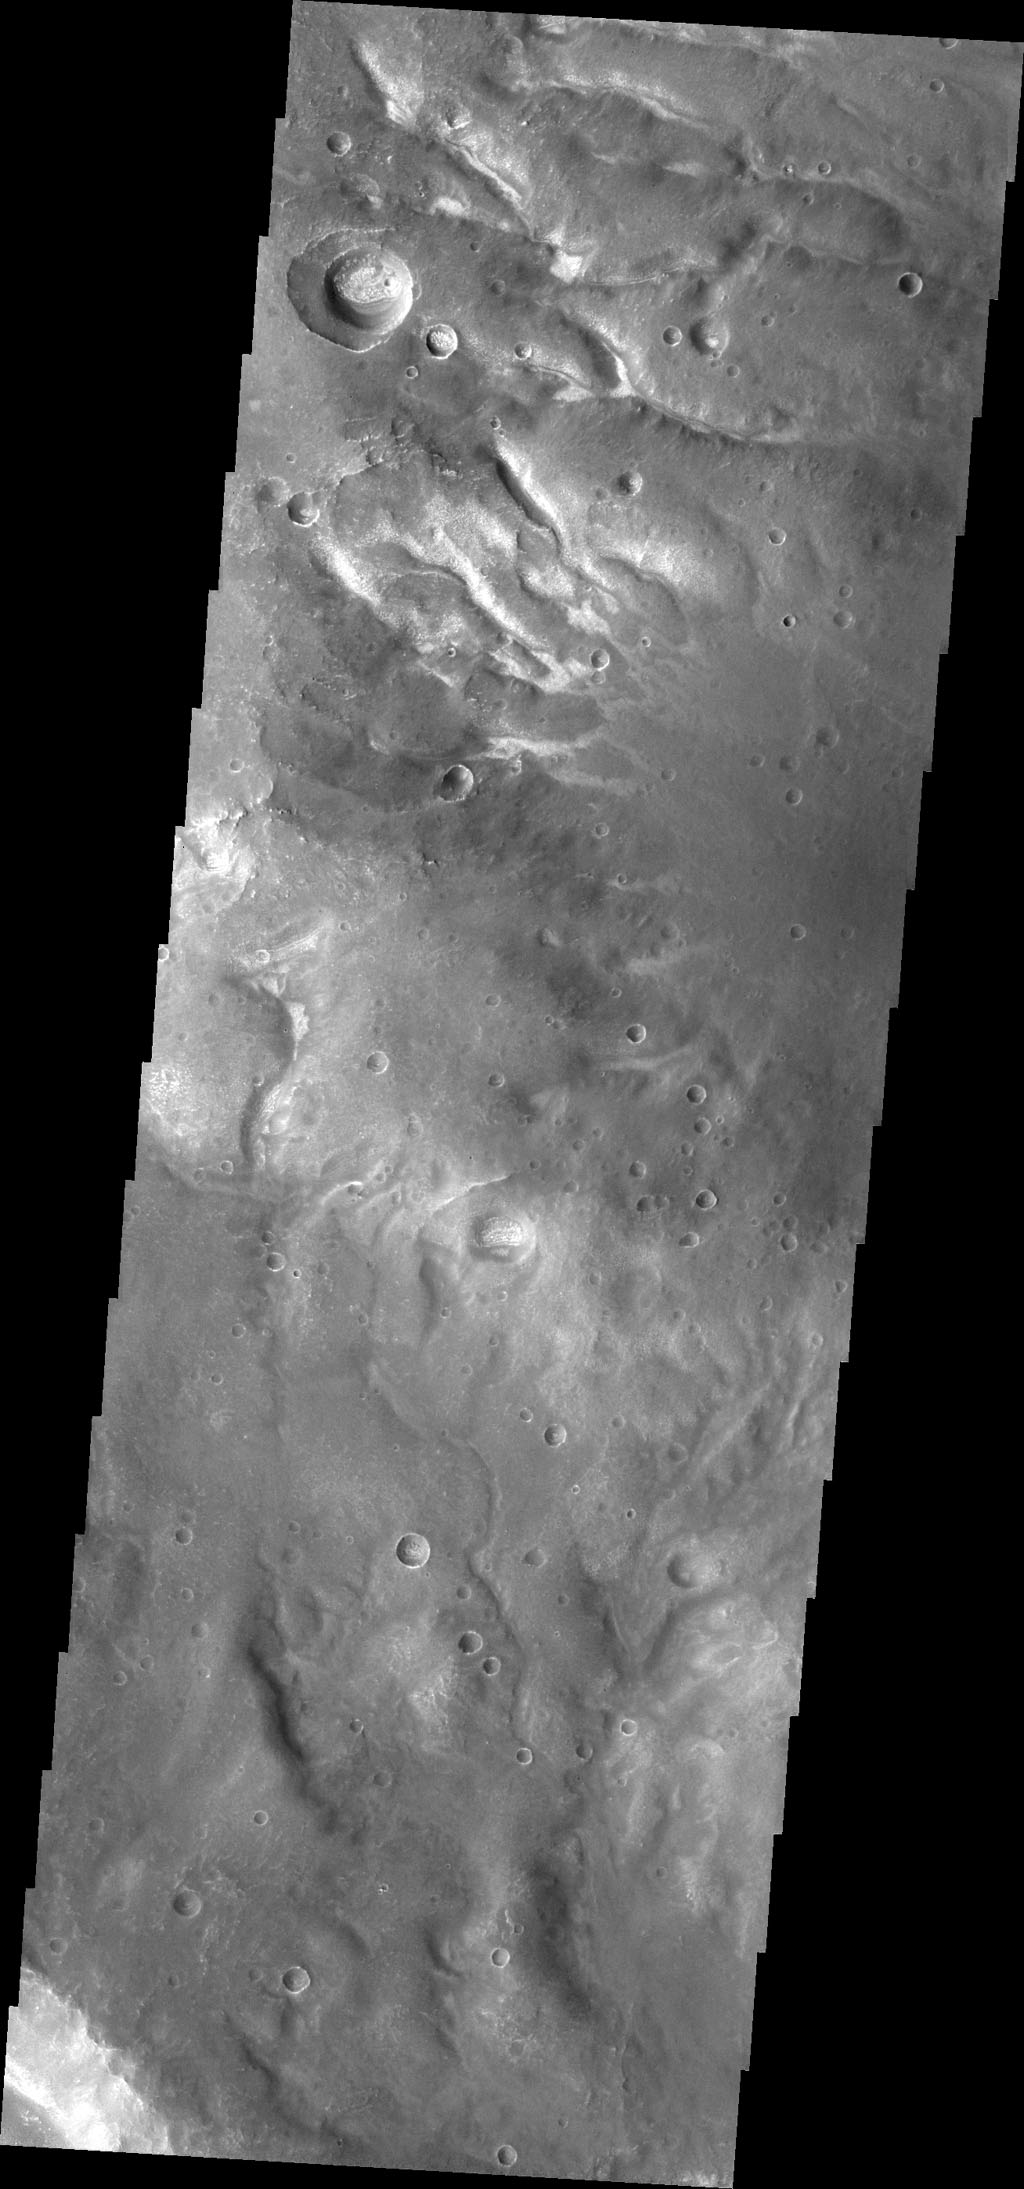 A network of small channels is visible in image from NASA's 2001 Mars Odyssey spacecraft.